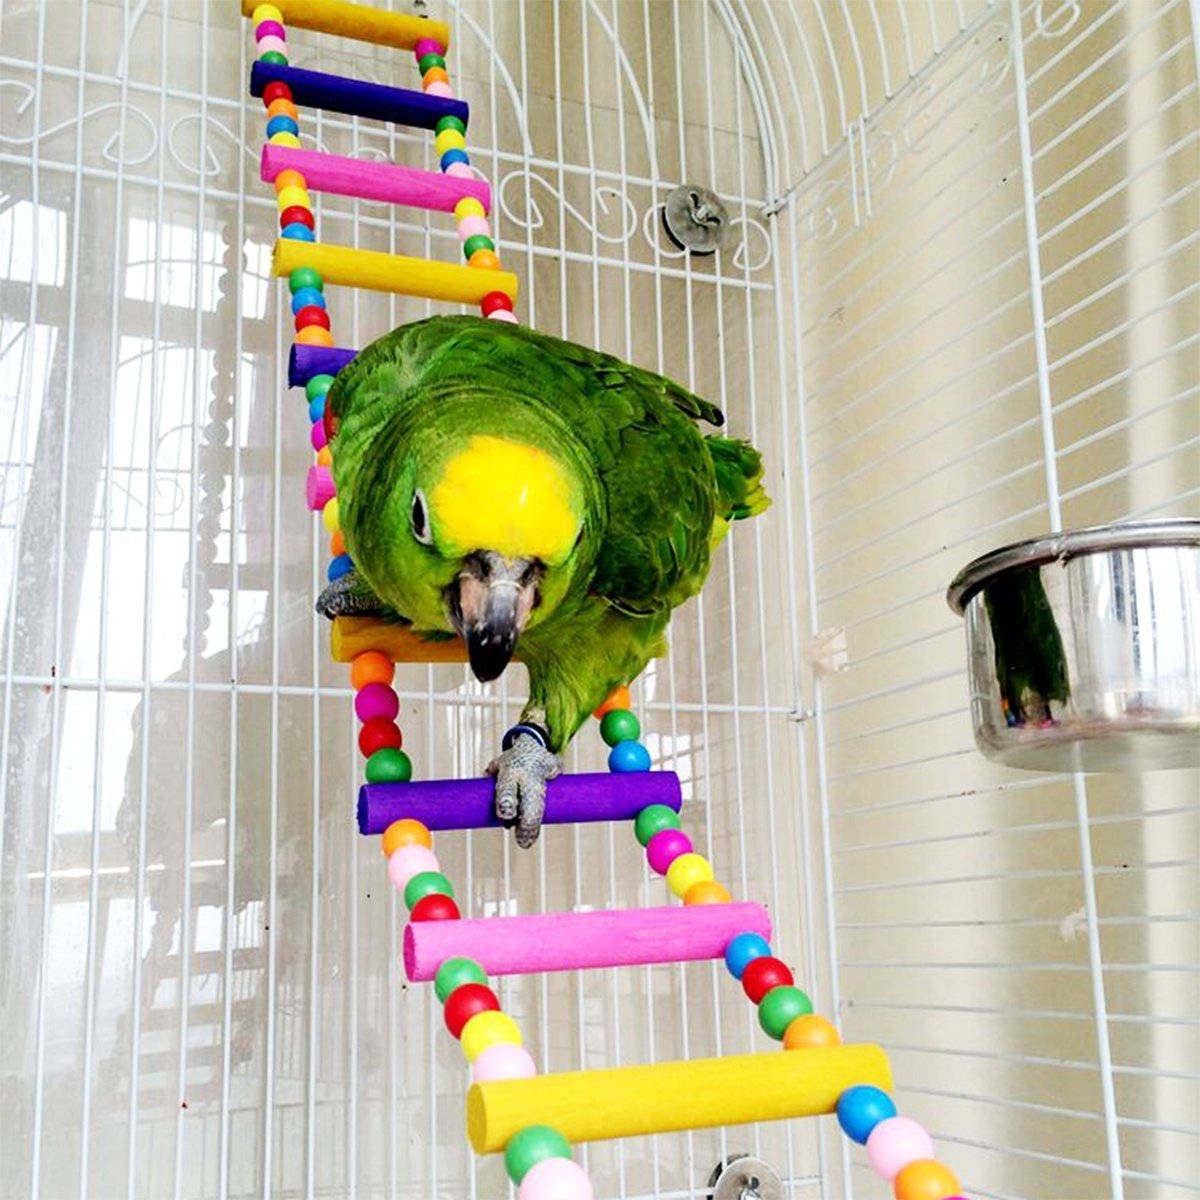 OnePlus Colorful Ladder Bird Toy, Flexible Ladders Wooden Rainbow Bridge for Parrots, 4 Inch W by 31.5 Inch L by OnePlus